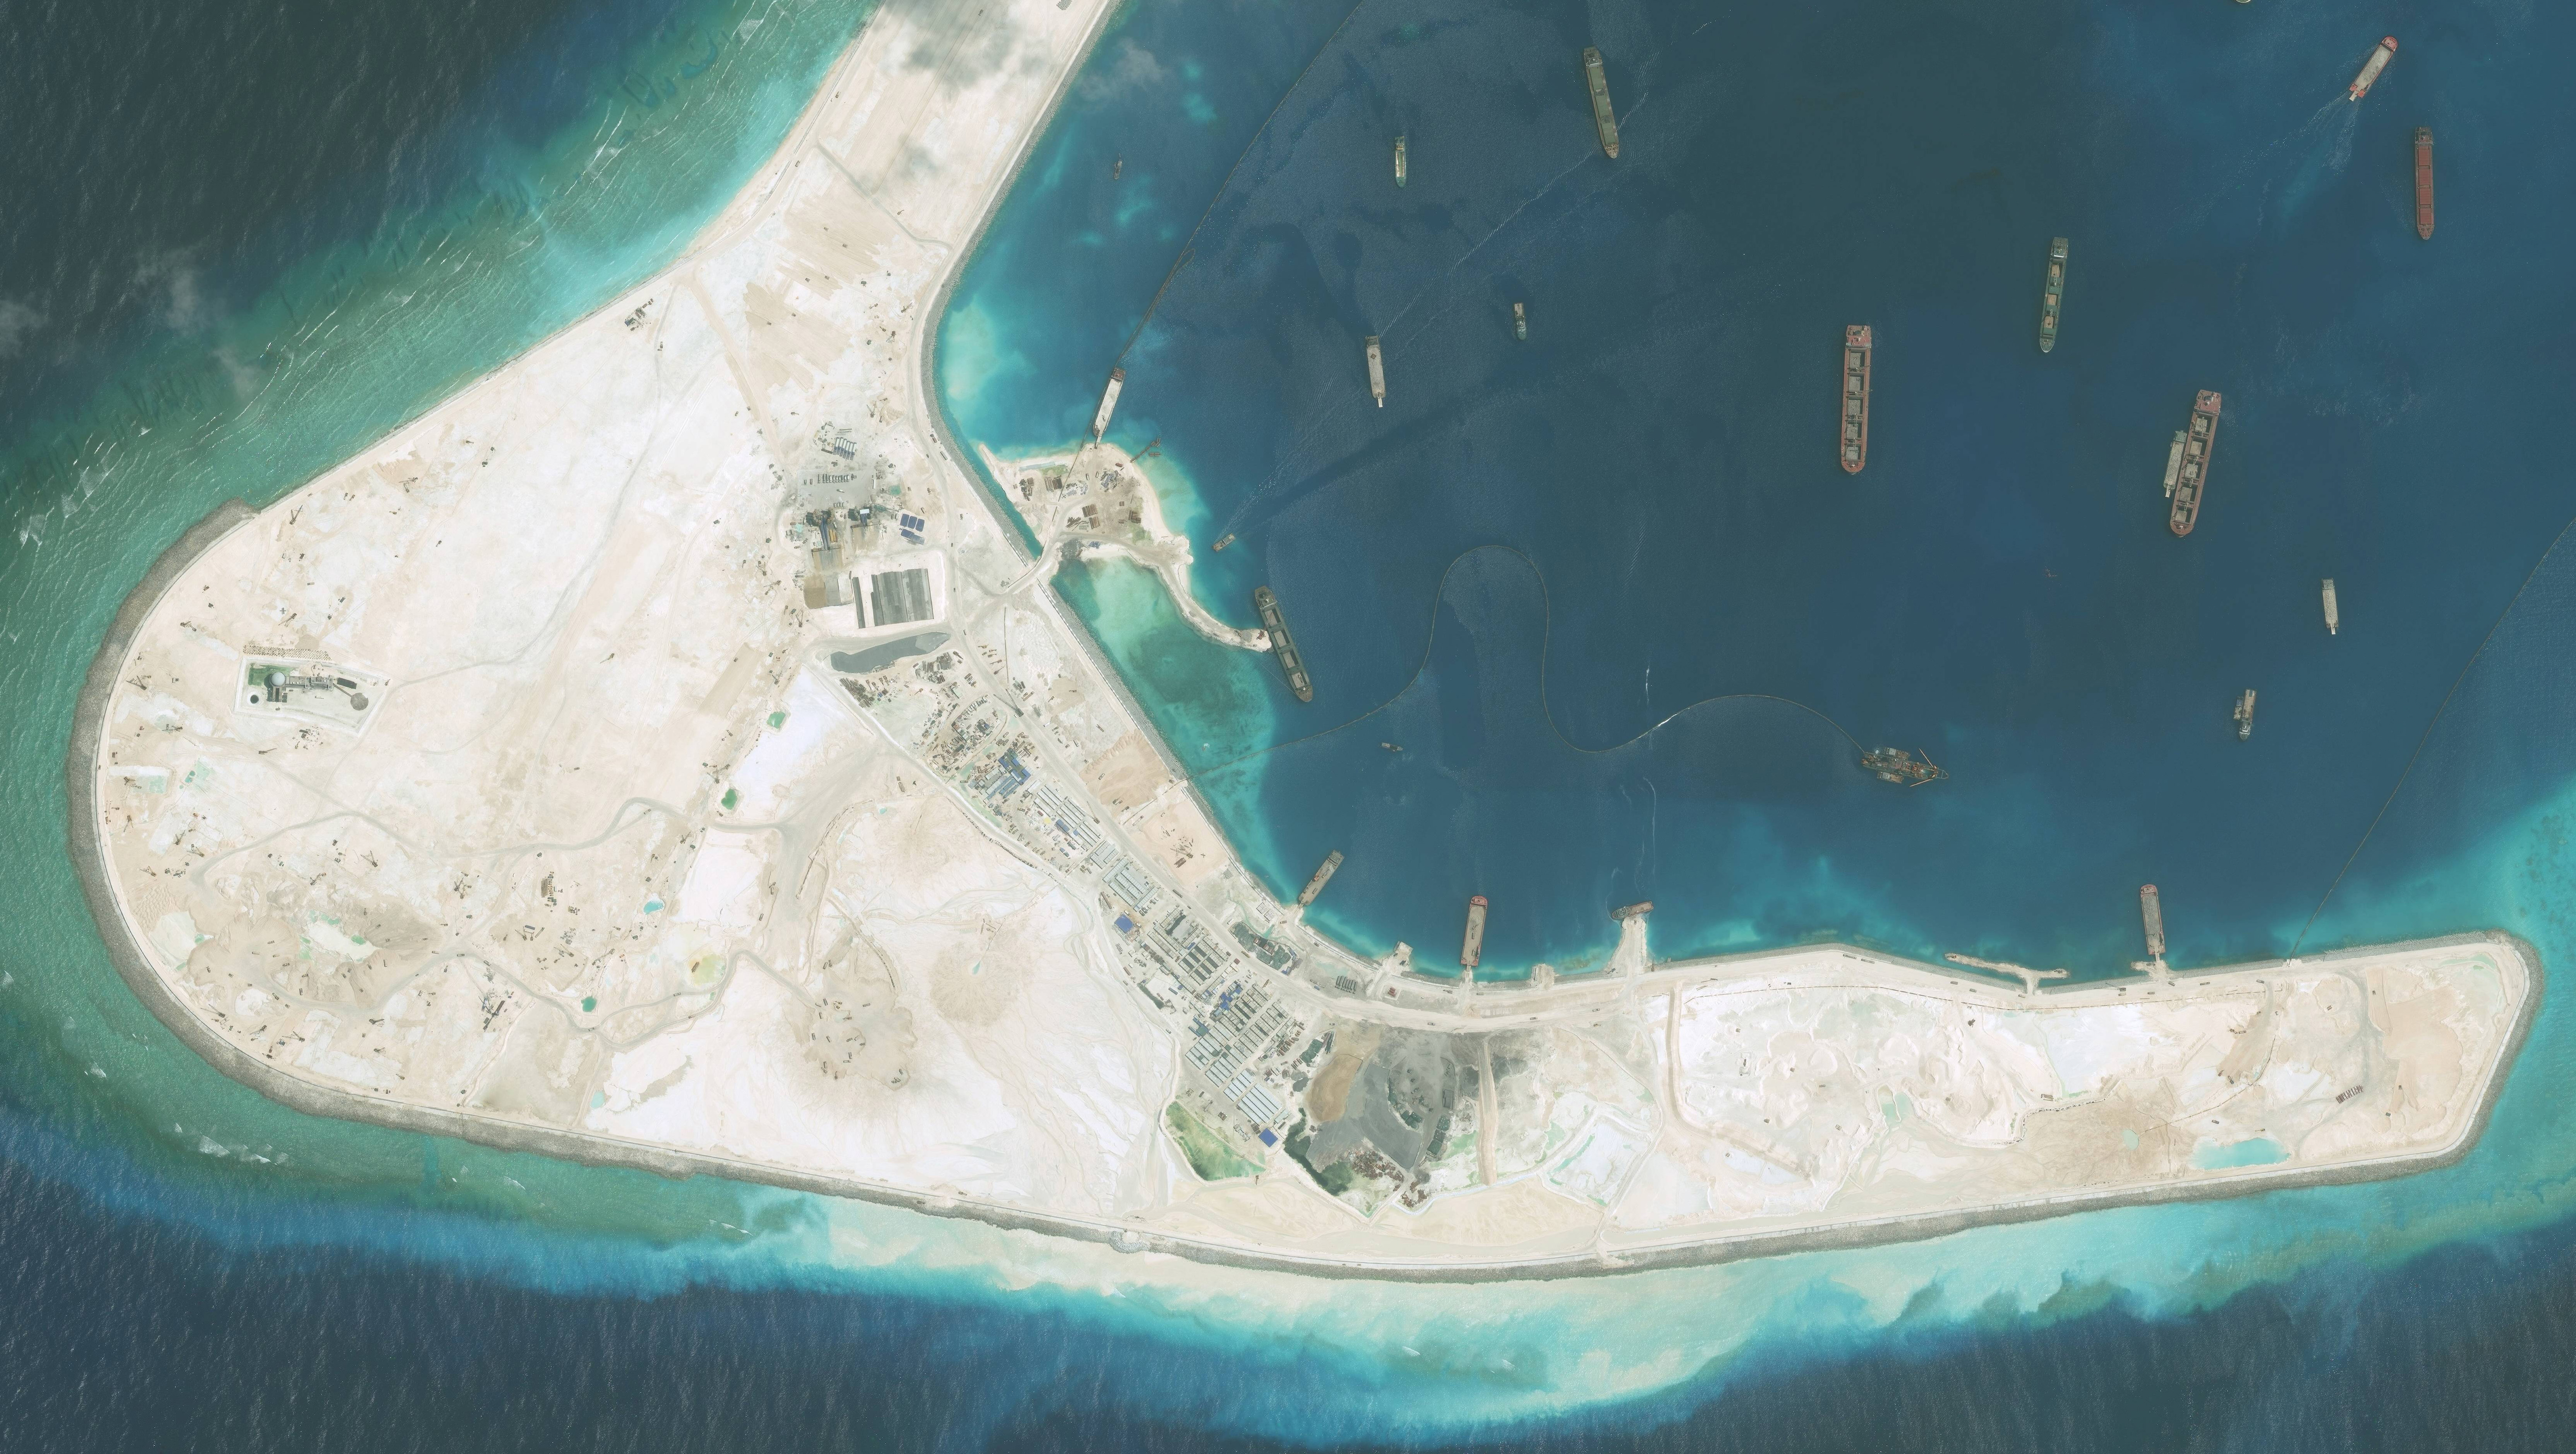 DigitalGlobe high-resolution imagery of the Subi Reef in the South China Sea, a part of the Spratly Islands group on September 1, 2015